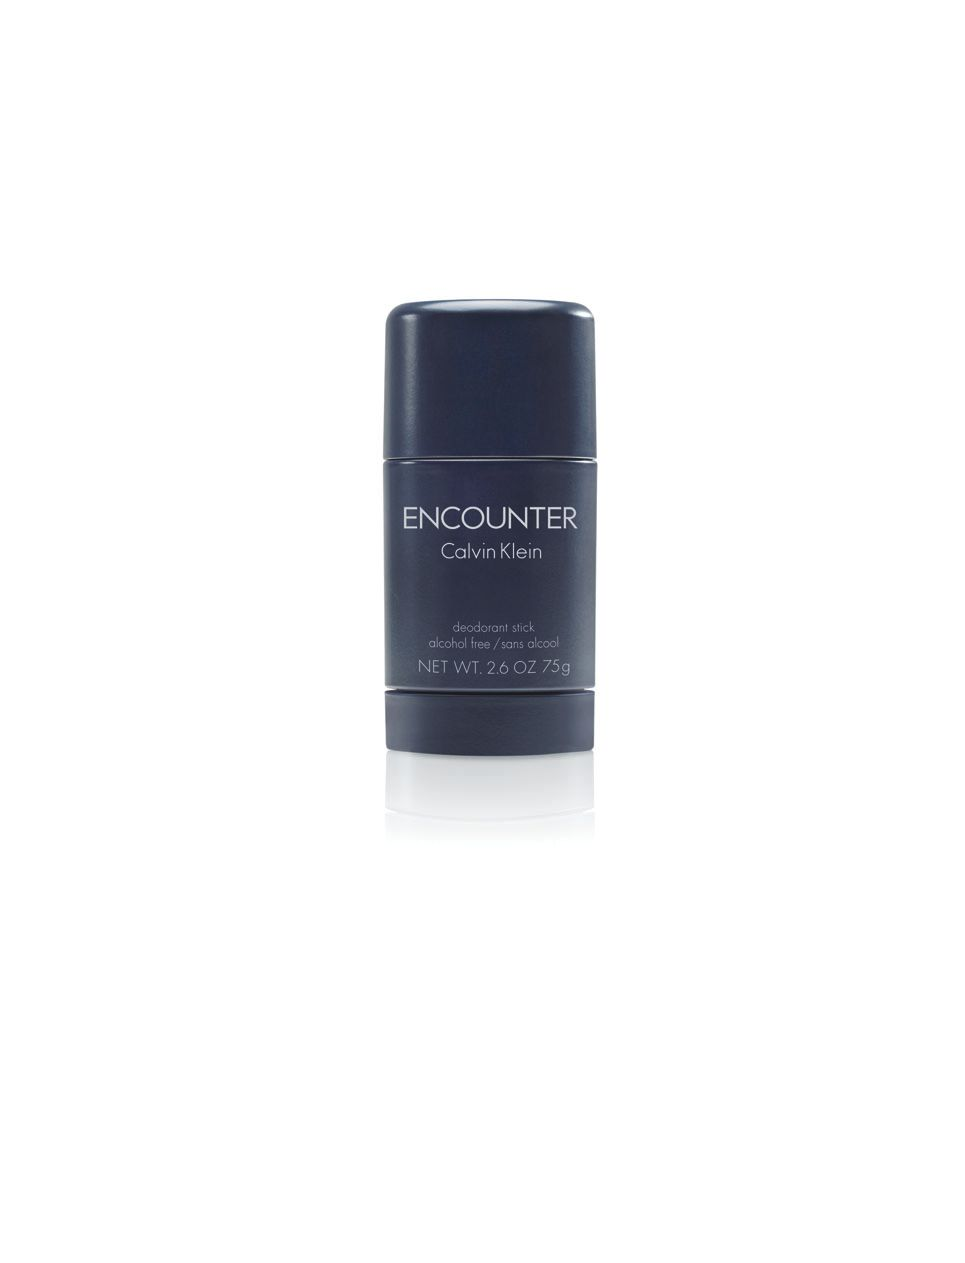 Encounter Deodorant Stick